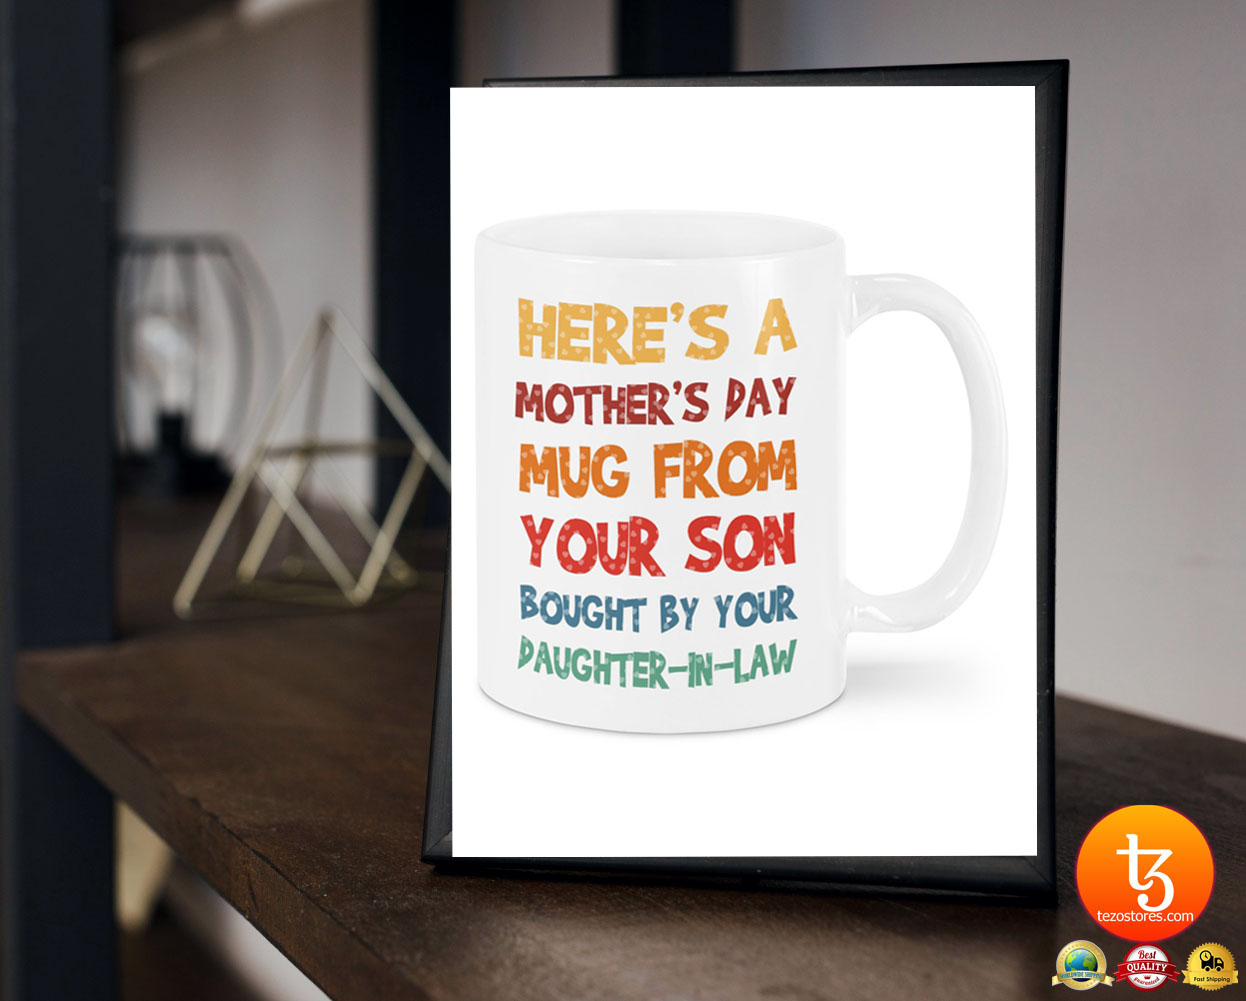 Here's a mother's day mug from your son mug 17